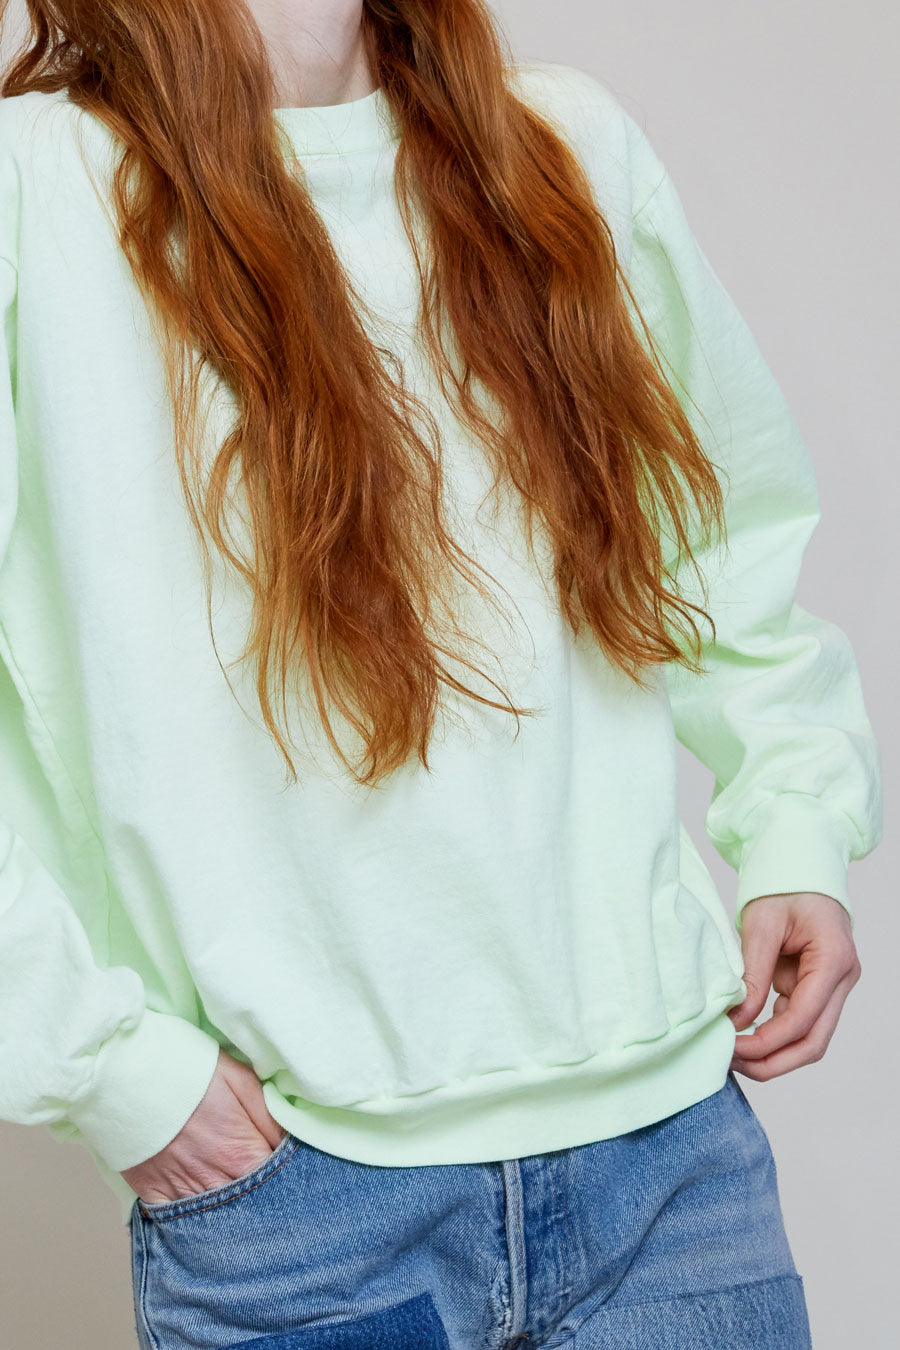 Audrey Louise Reynolds Unisex Pullover Sweatshirt in Neon Green Algea and Goldenrod